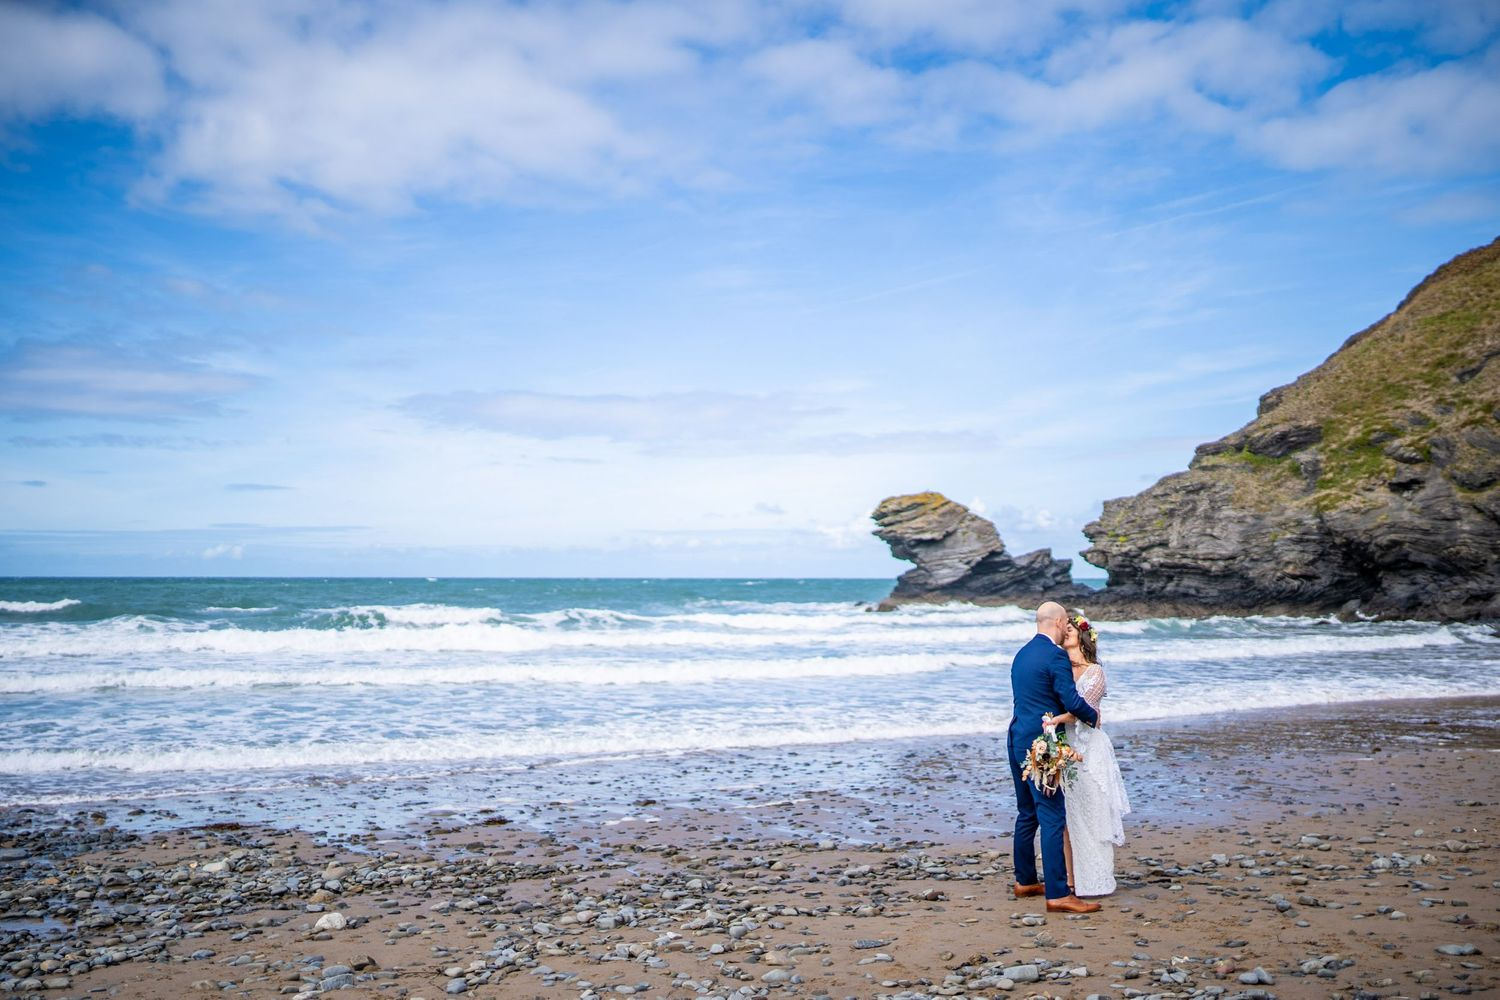 Wedding couple at Llangranog beach